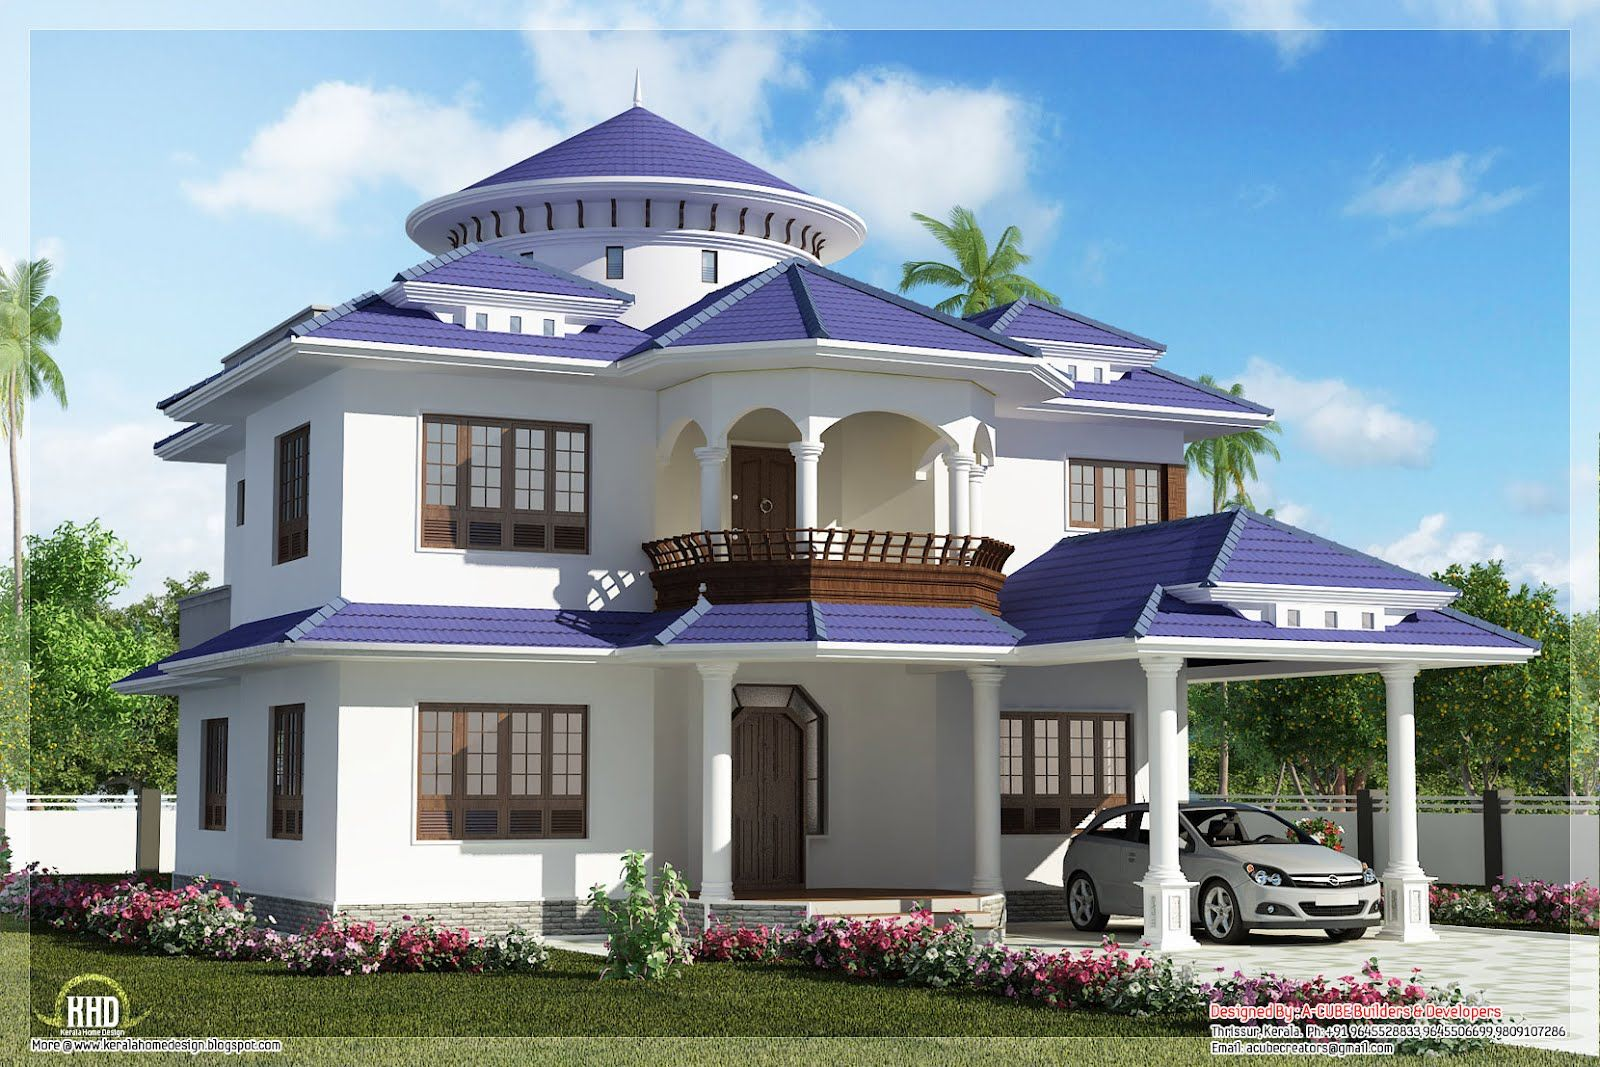 my dream home design. House dream house  Beautiful home design in 2800 sq feet Indian